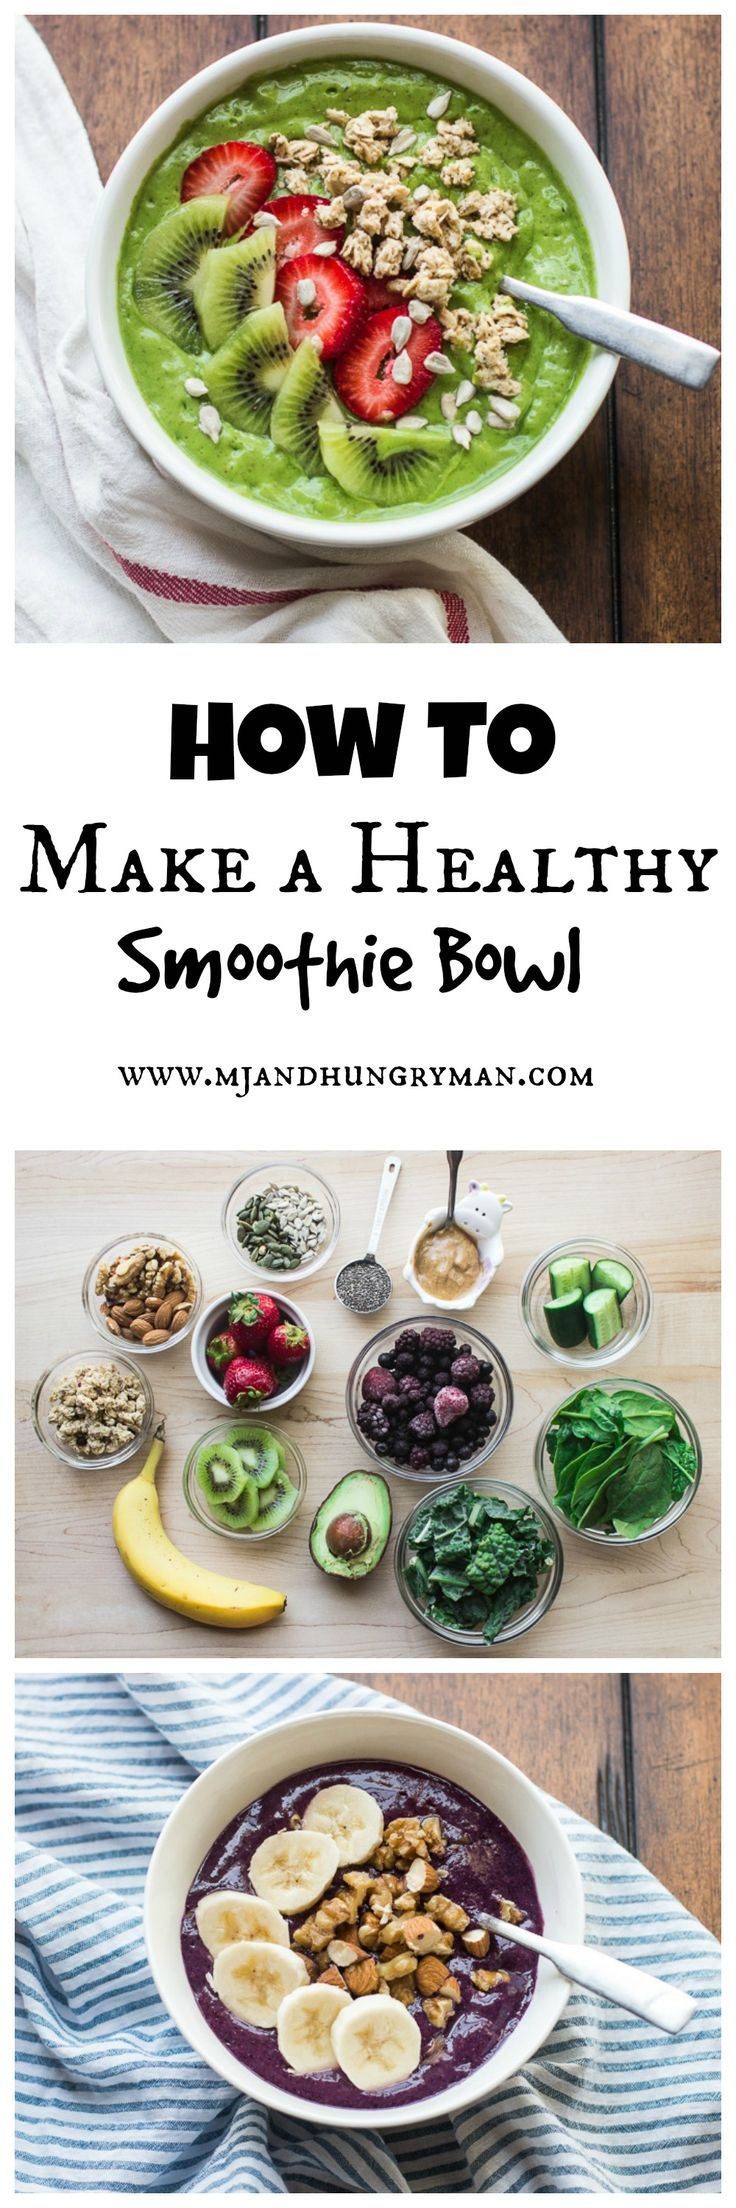 How to make a healthy smoothie bowl